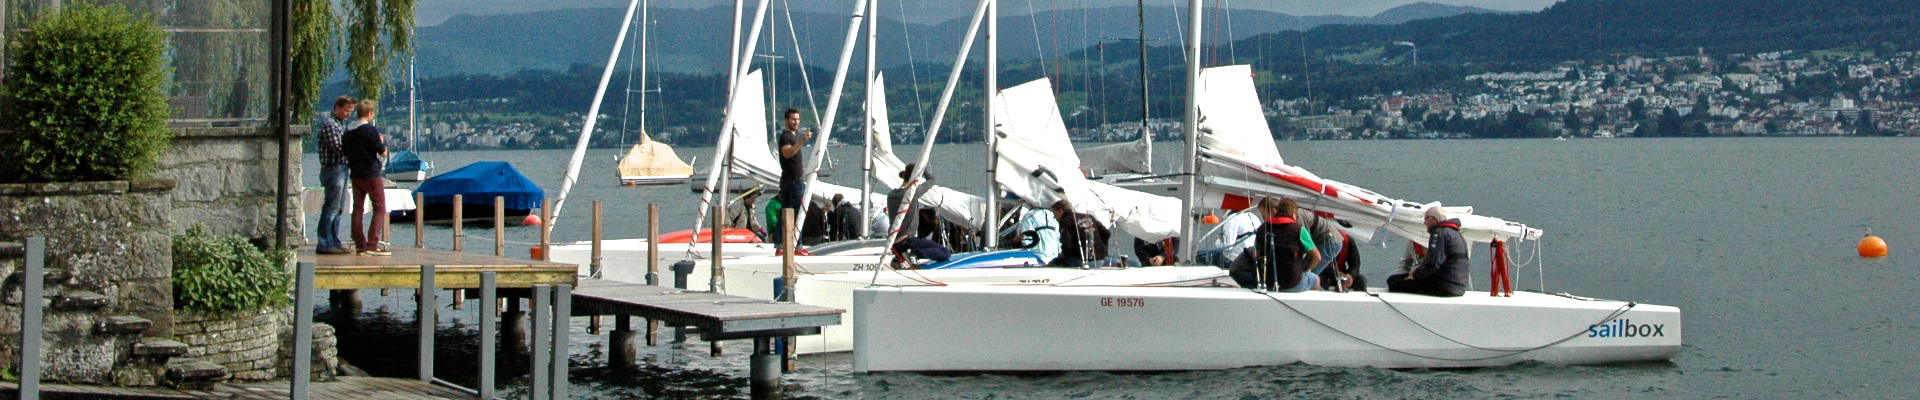 Am insign Cup 2014 waren vier Yachten vom Typ mOcean am Start